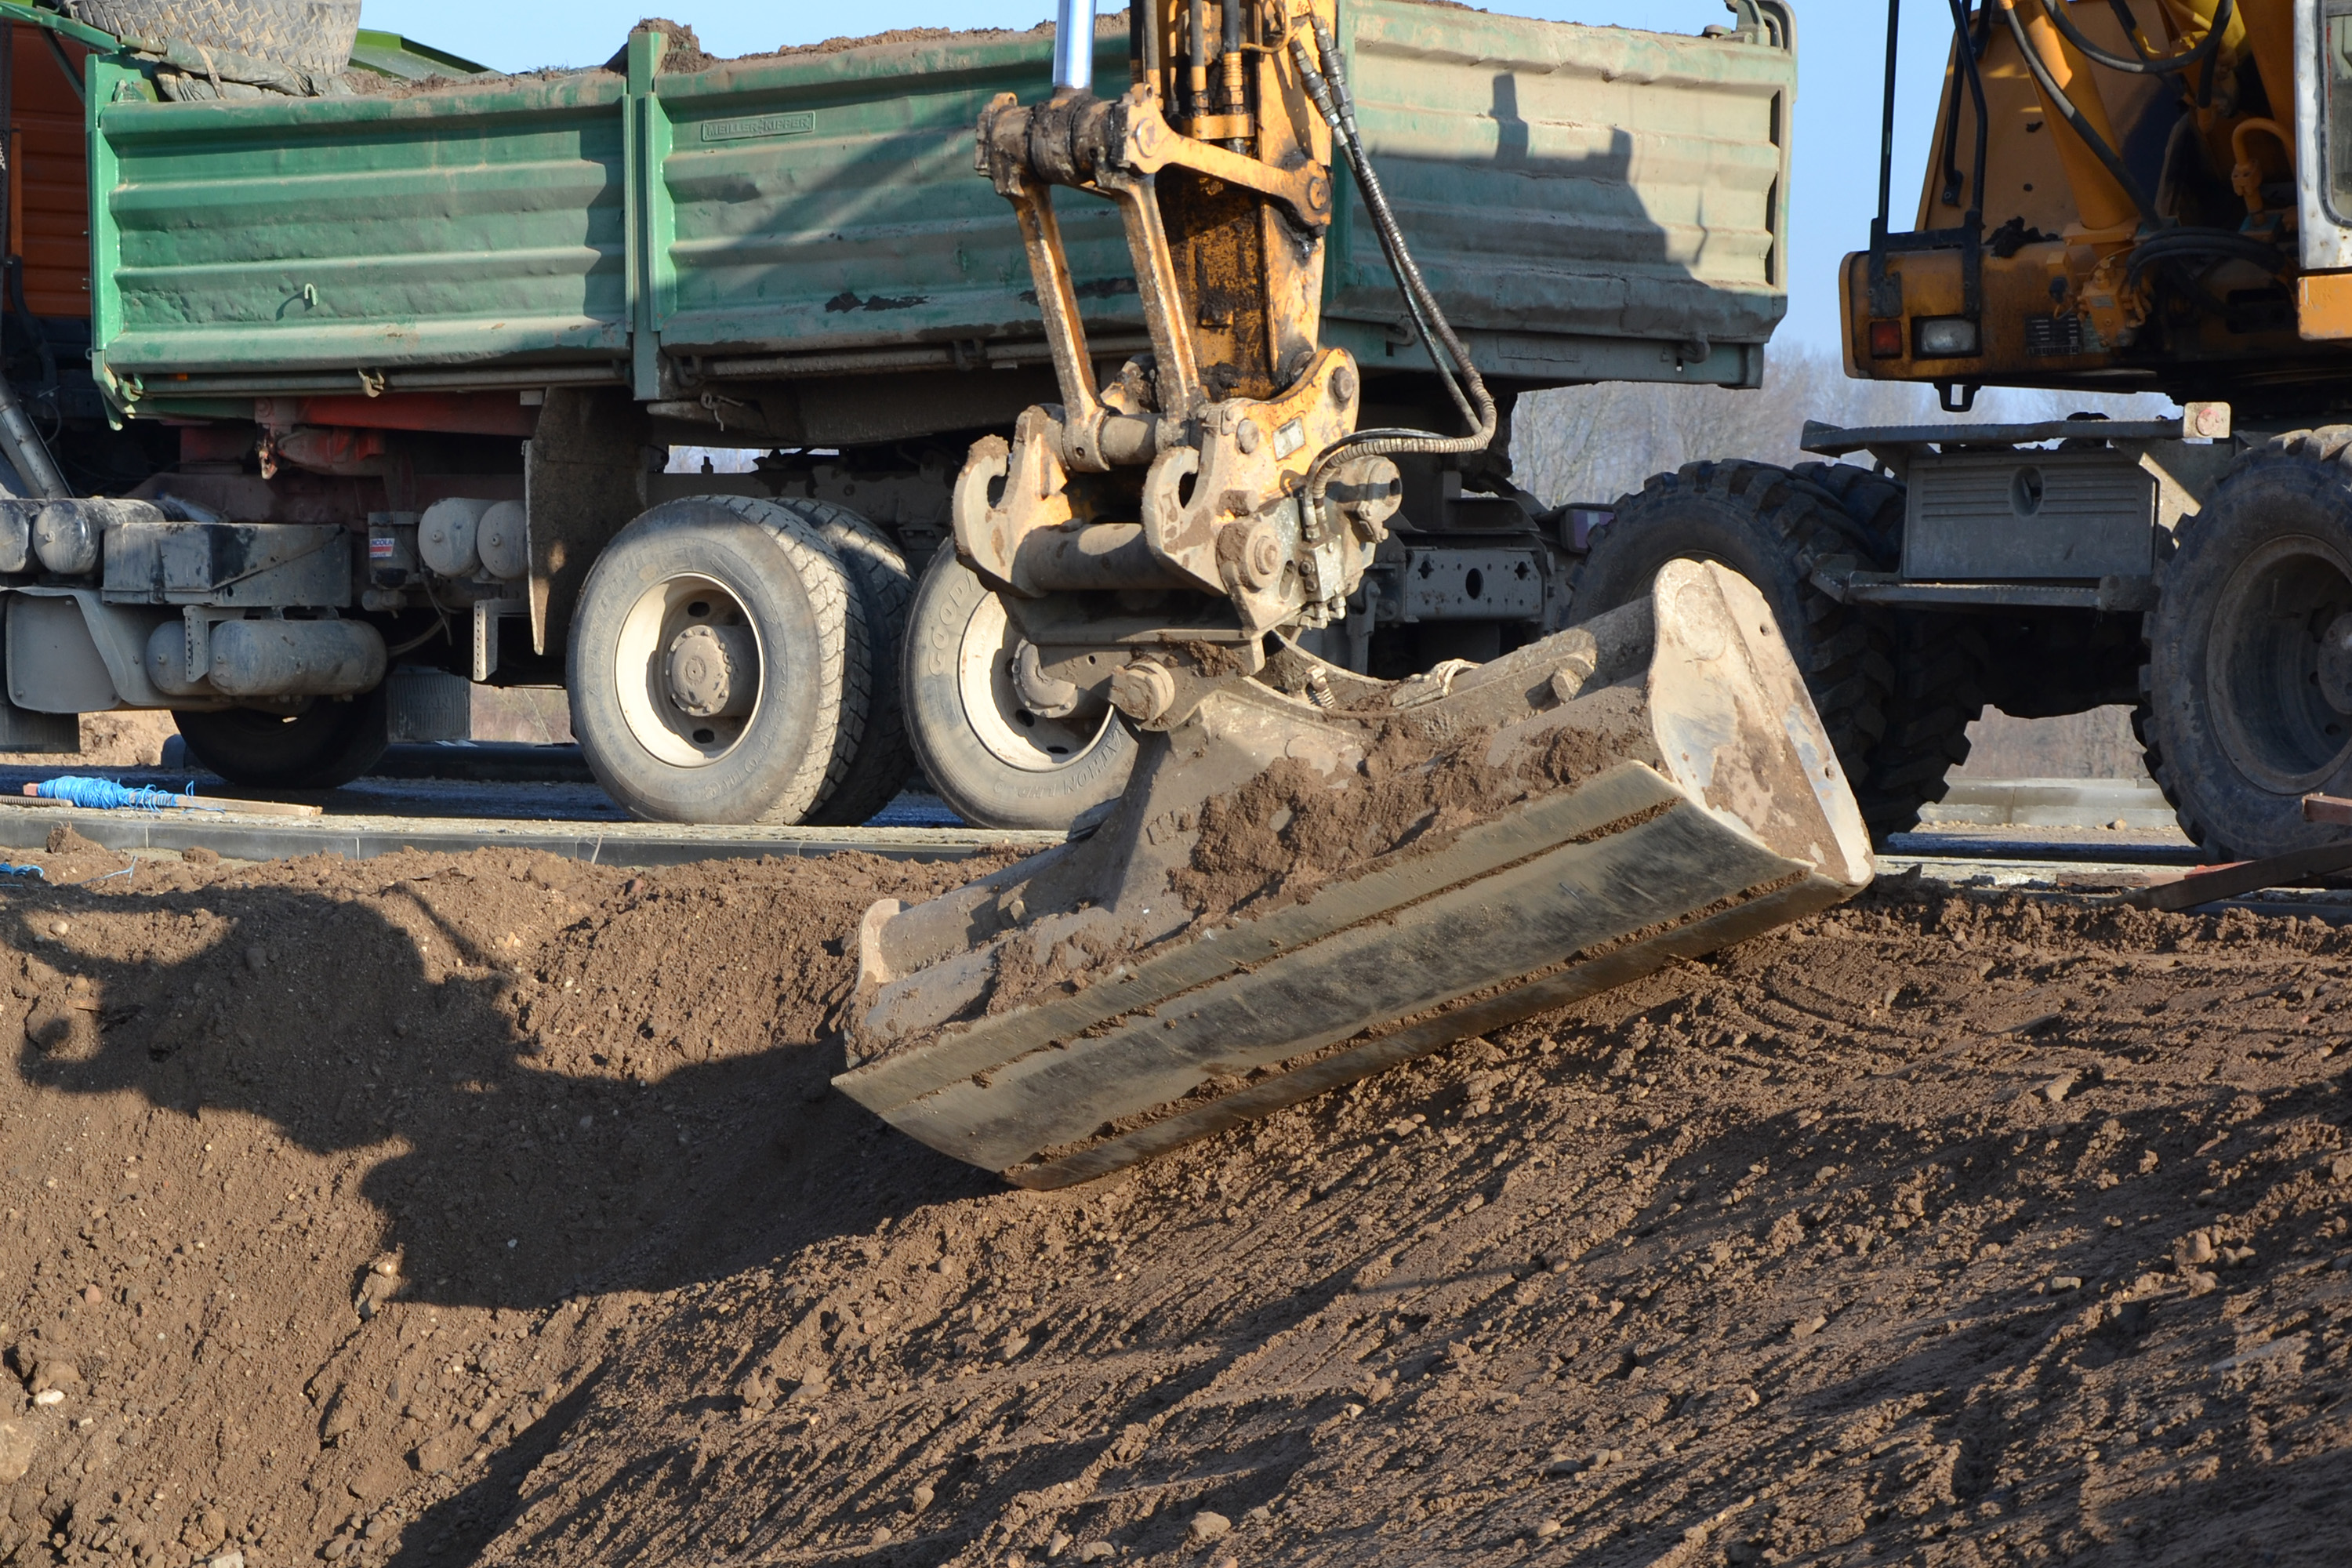 Truck and hoe, Backhoe, Slope, Mud, Muddy, HQ Photo